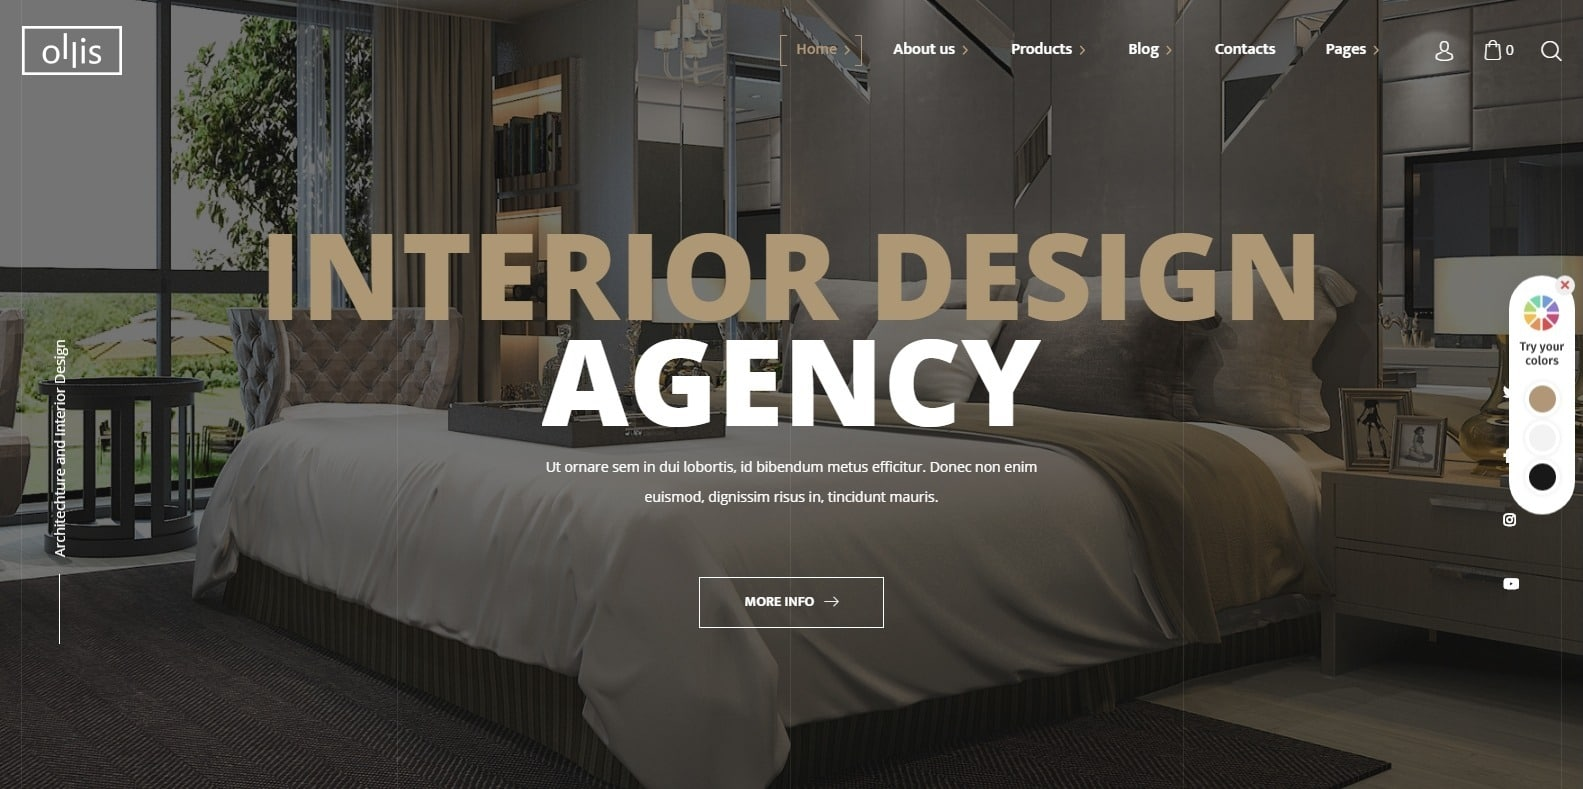 ollis-home-staging-website-template